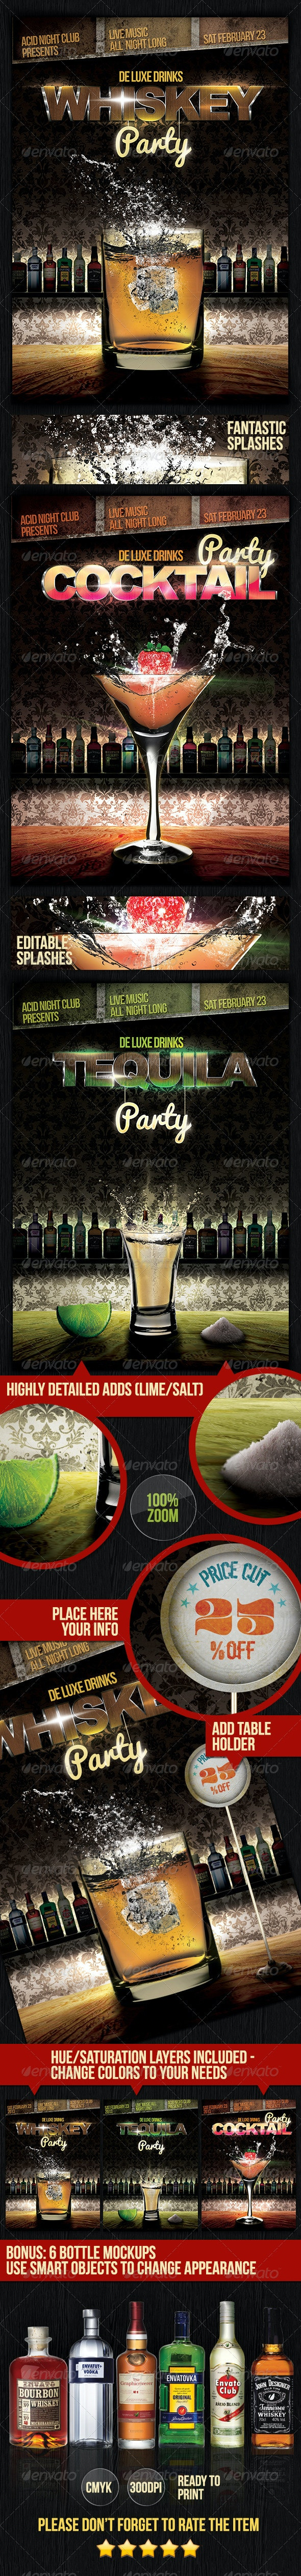 Deluxe Drinks Party Flyers - Clubs & Parties Events